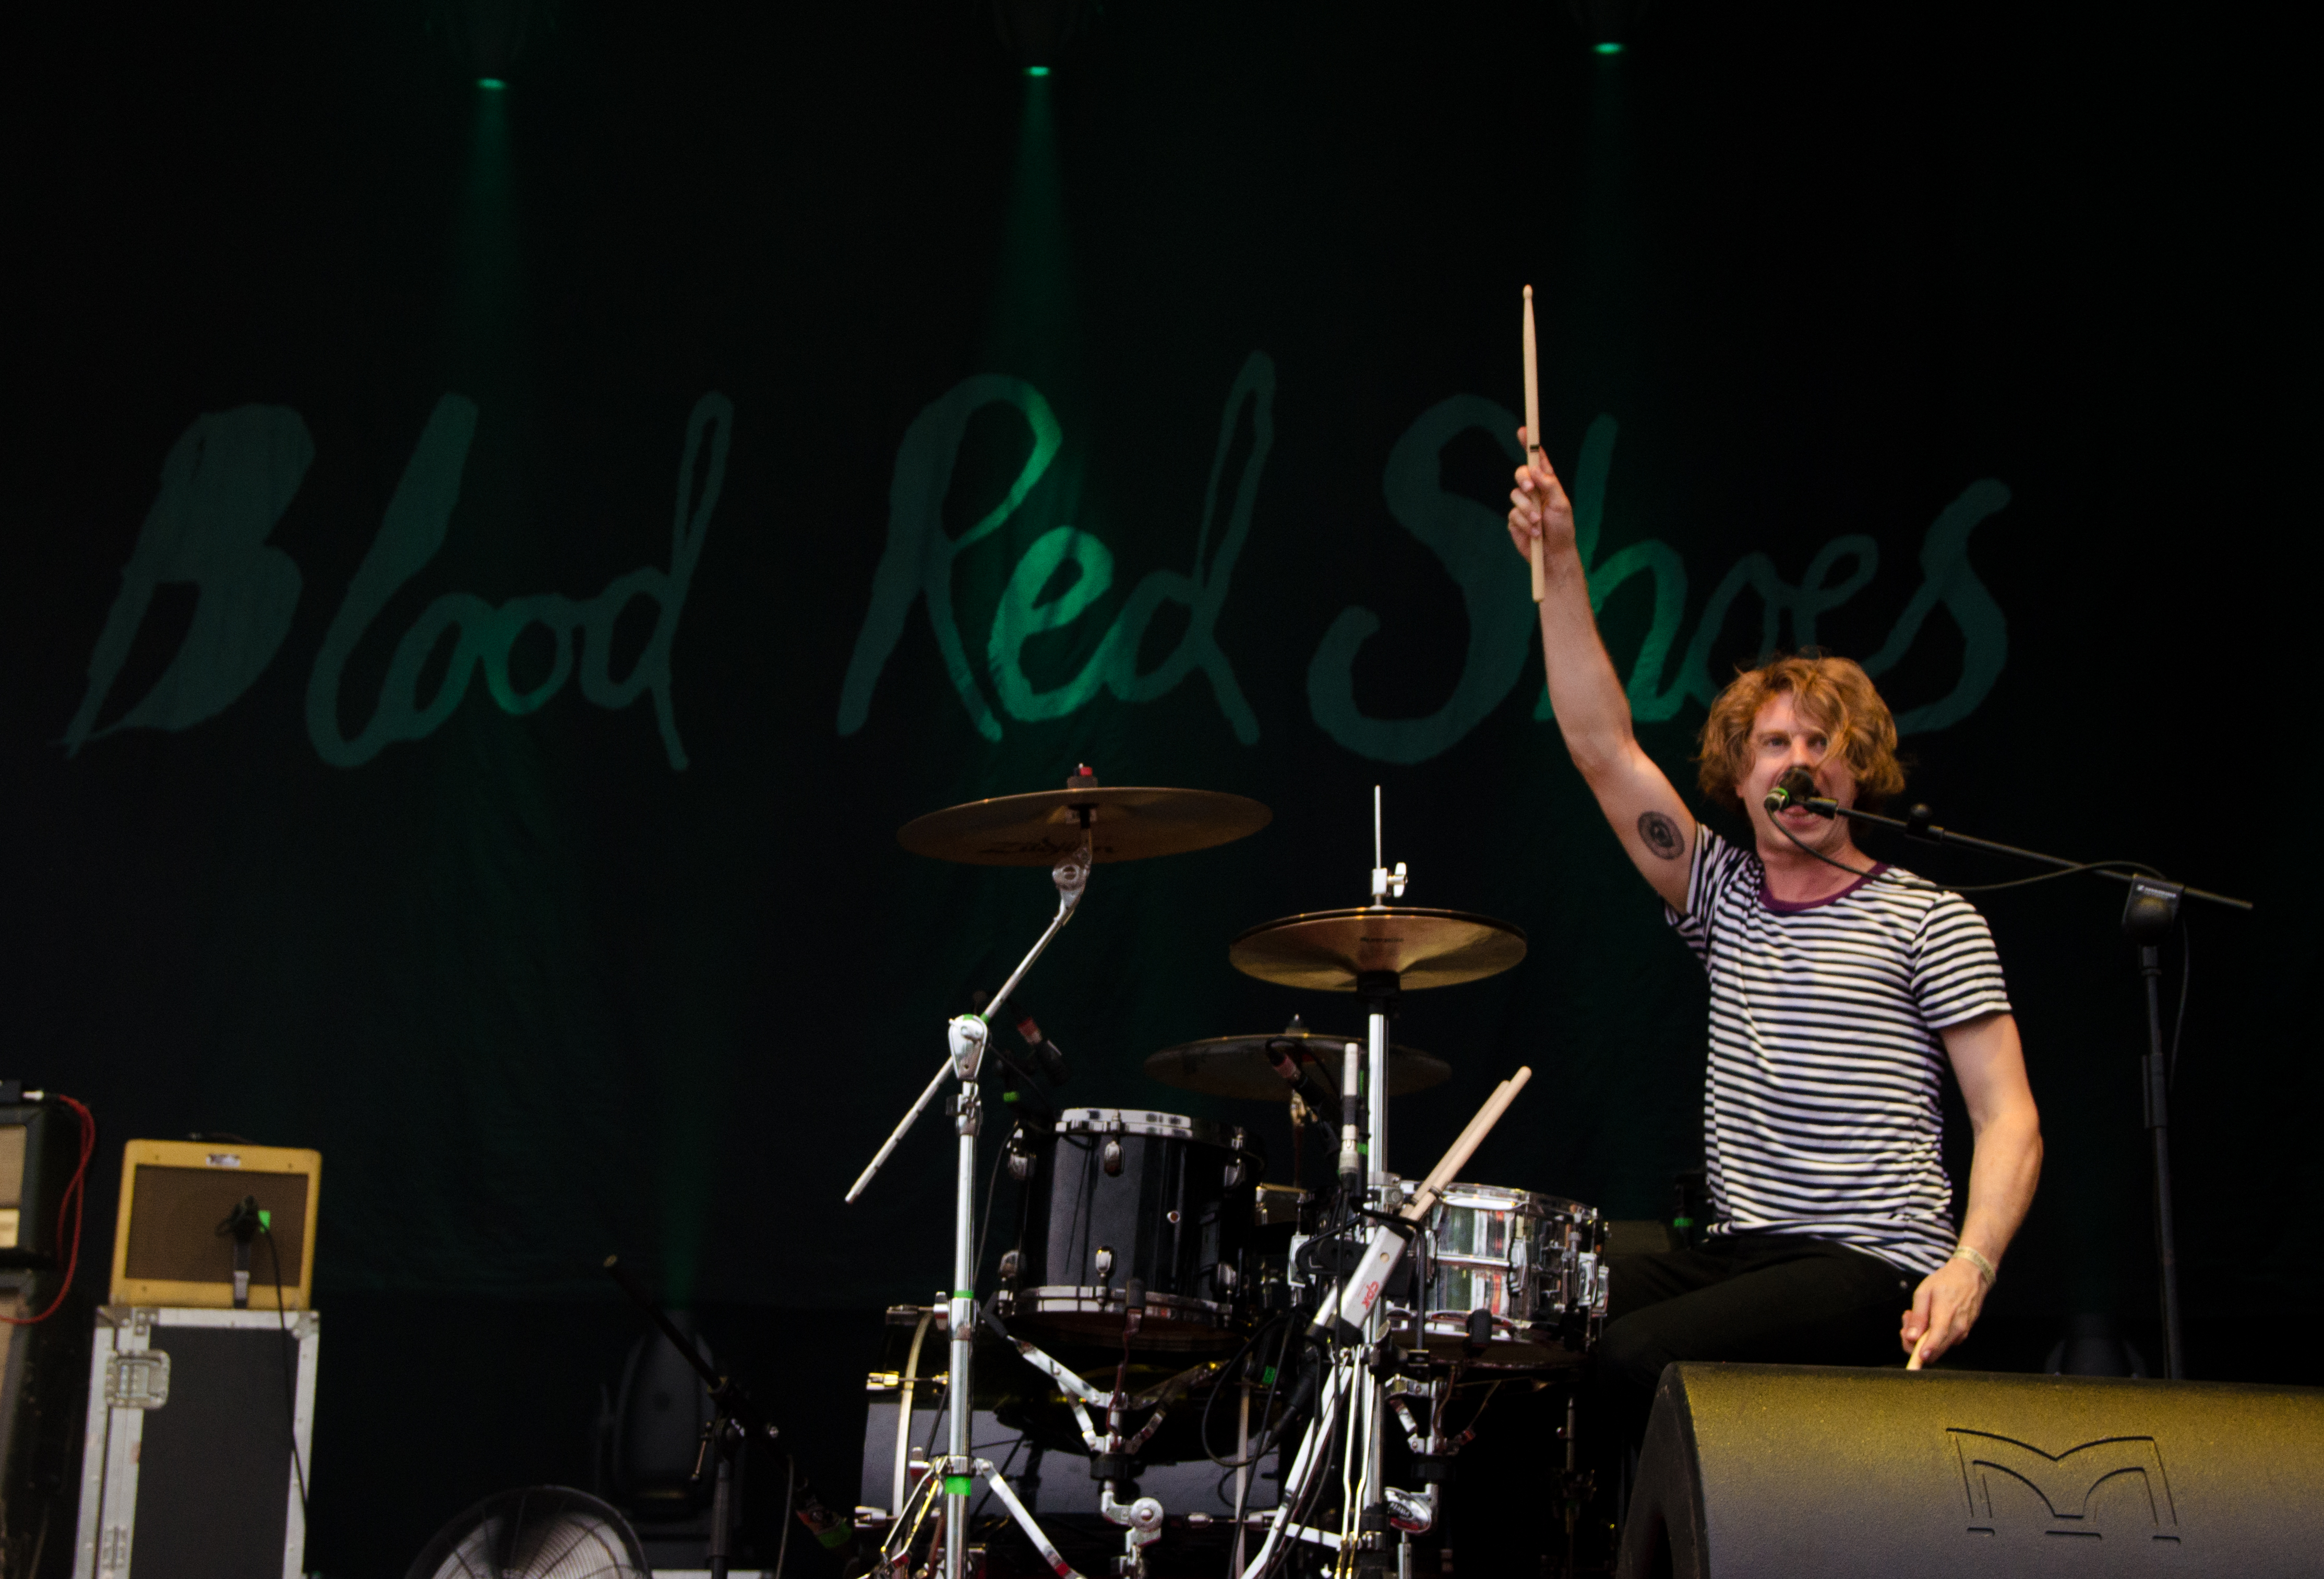 Blood Red Shoes Torrent